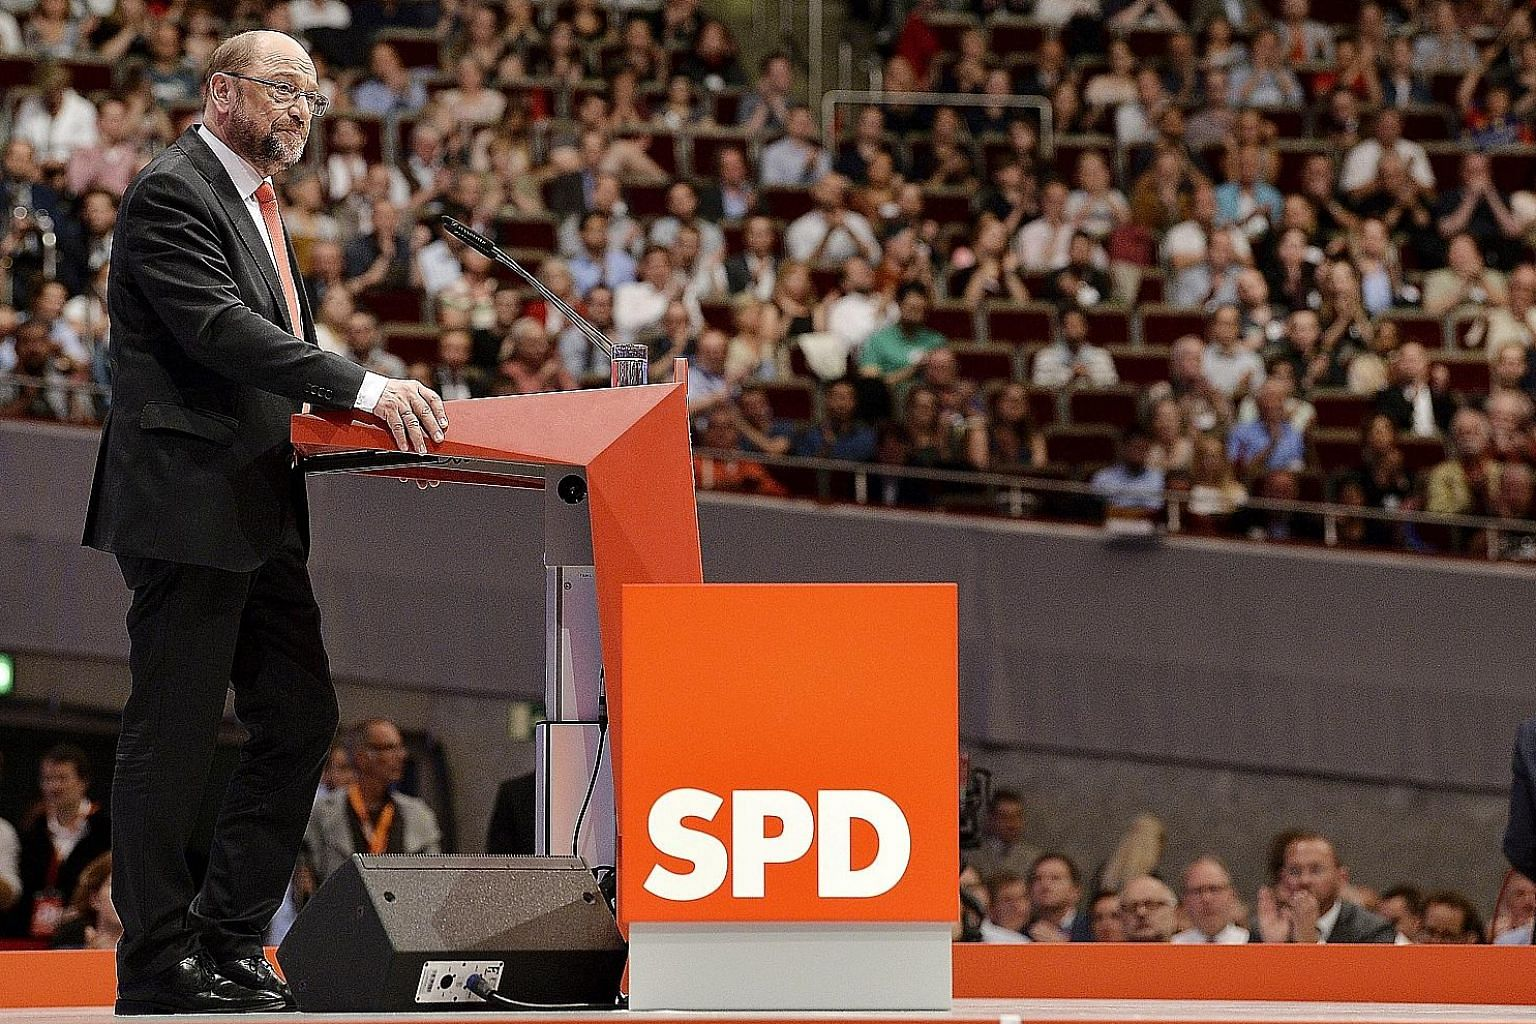 Mr Martin Schulz, Social Democratic Party (SPD) chairman and candidate for chancellor, at the party's conference in Dortmund, Germany, yesterday. Mr Schulz said his election manifesto will focus on free education, reducing the tax burden on low- and